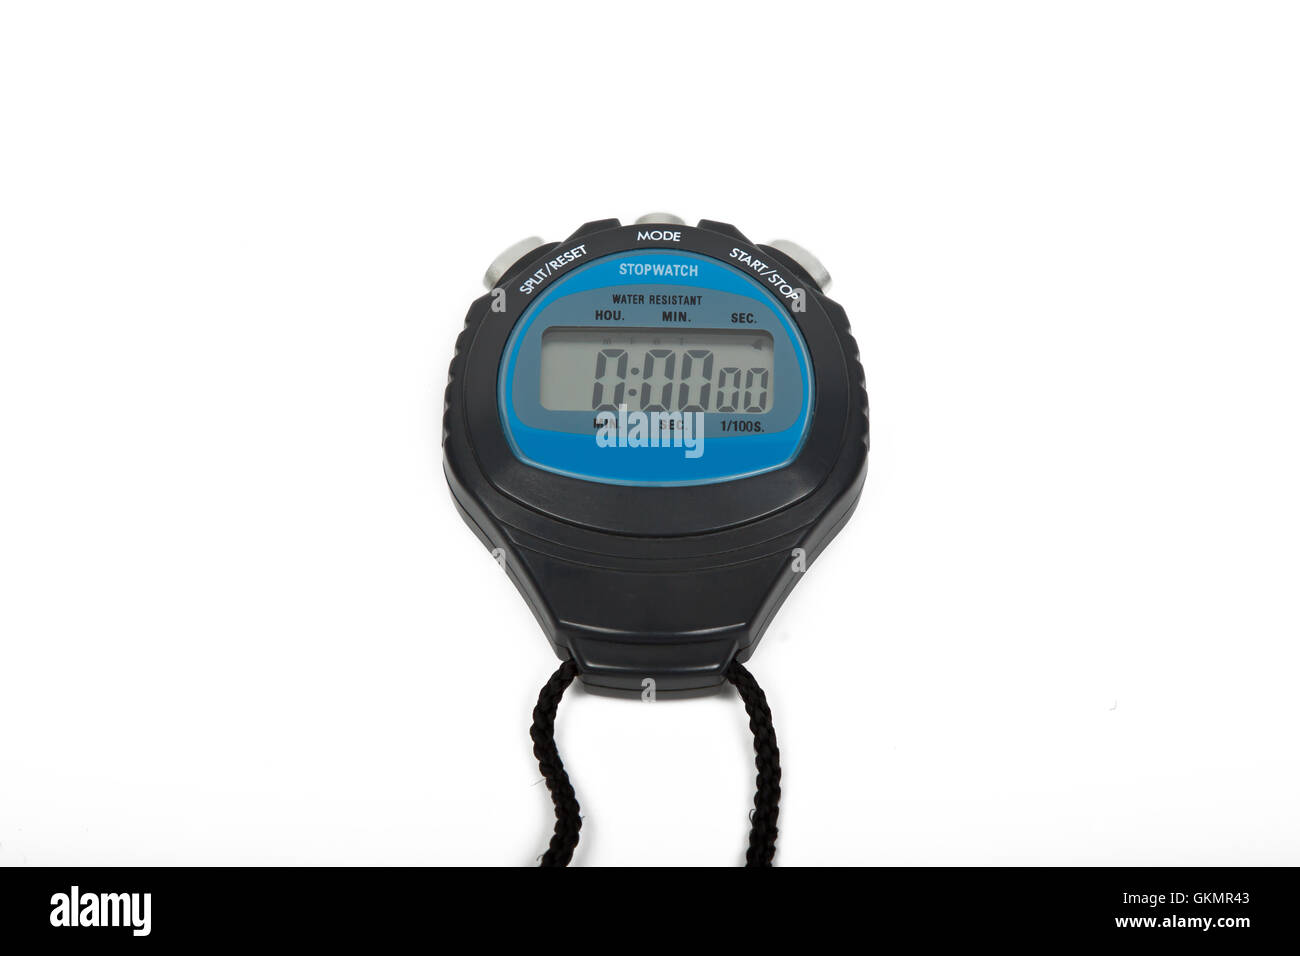 stop watch - Stock Image